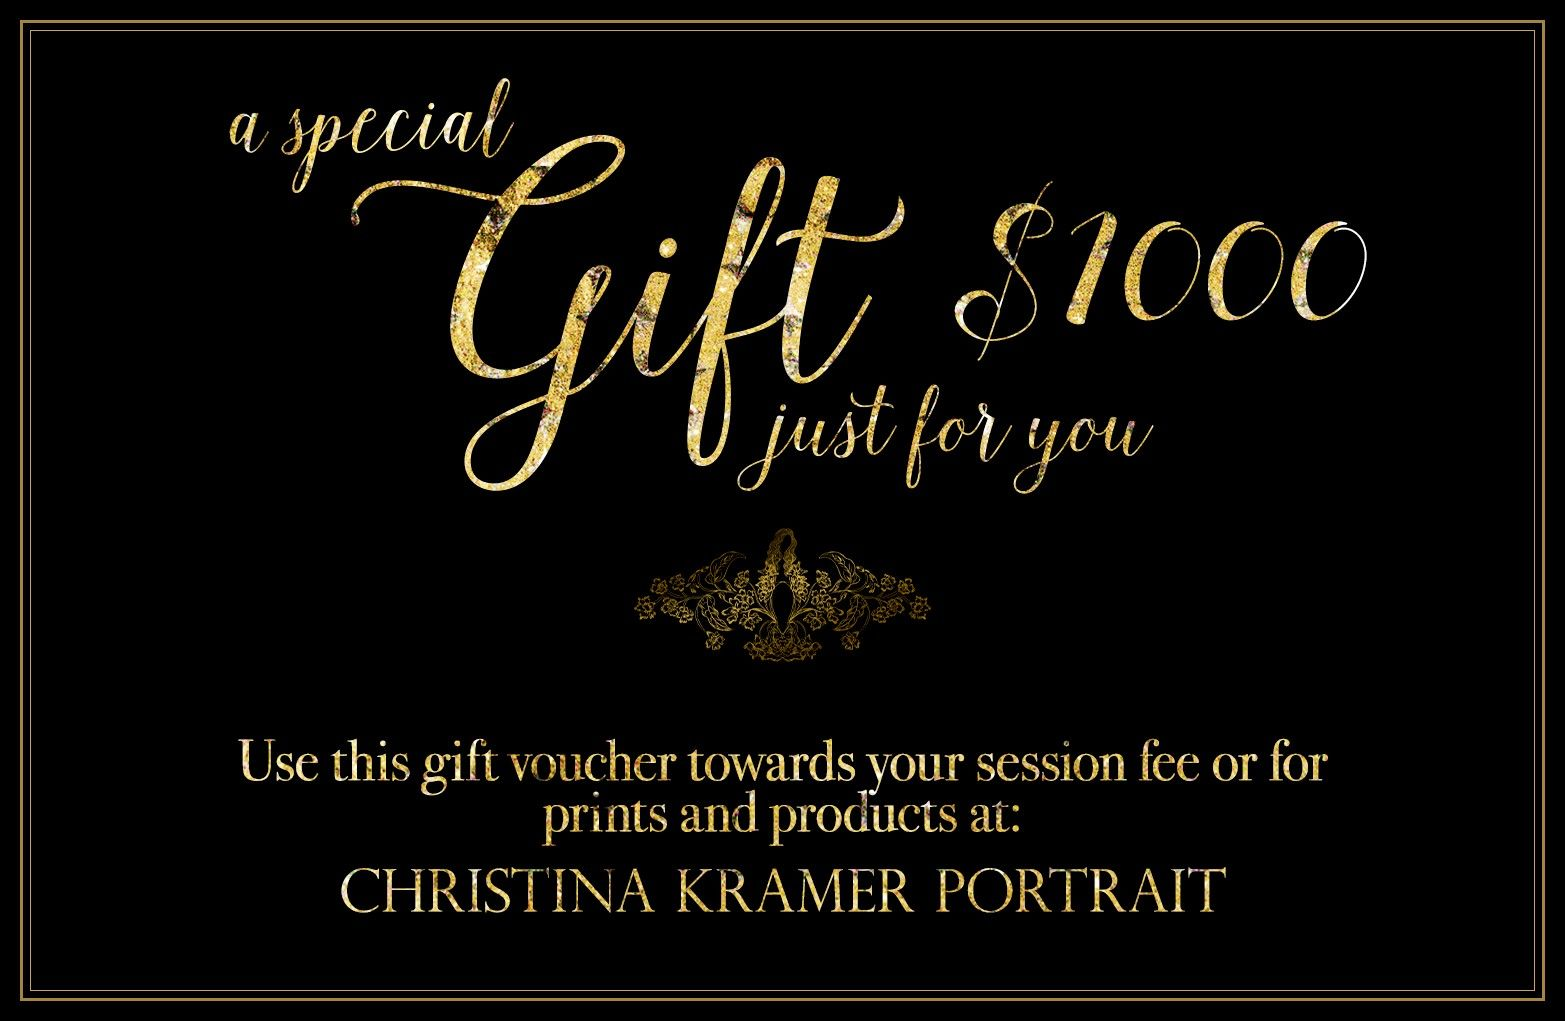 A special gift just for you. Use this $1000 gift voucher towards your session fee or for prints and products at: CHRISTINA KRAMER PORTRAIT — LONG BEACH, NEW YORK © Christina Tisi Kramer